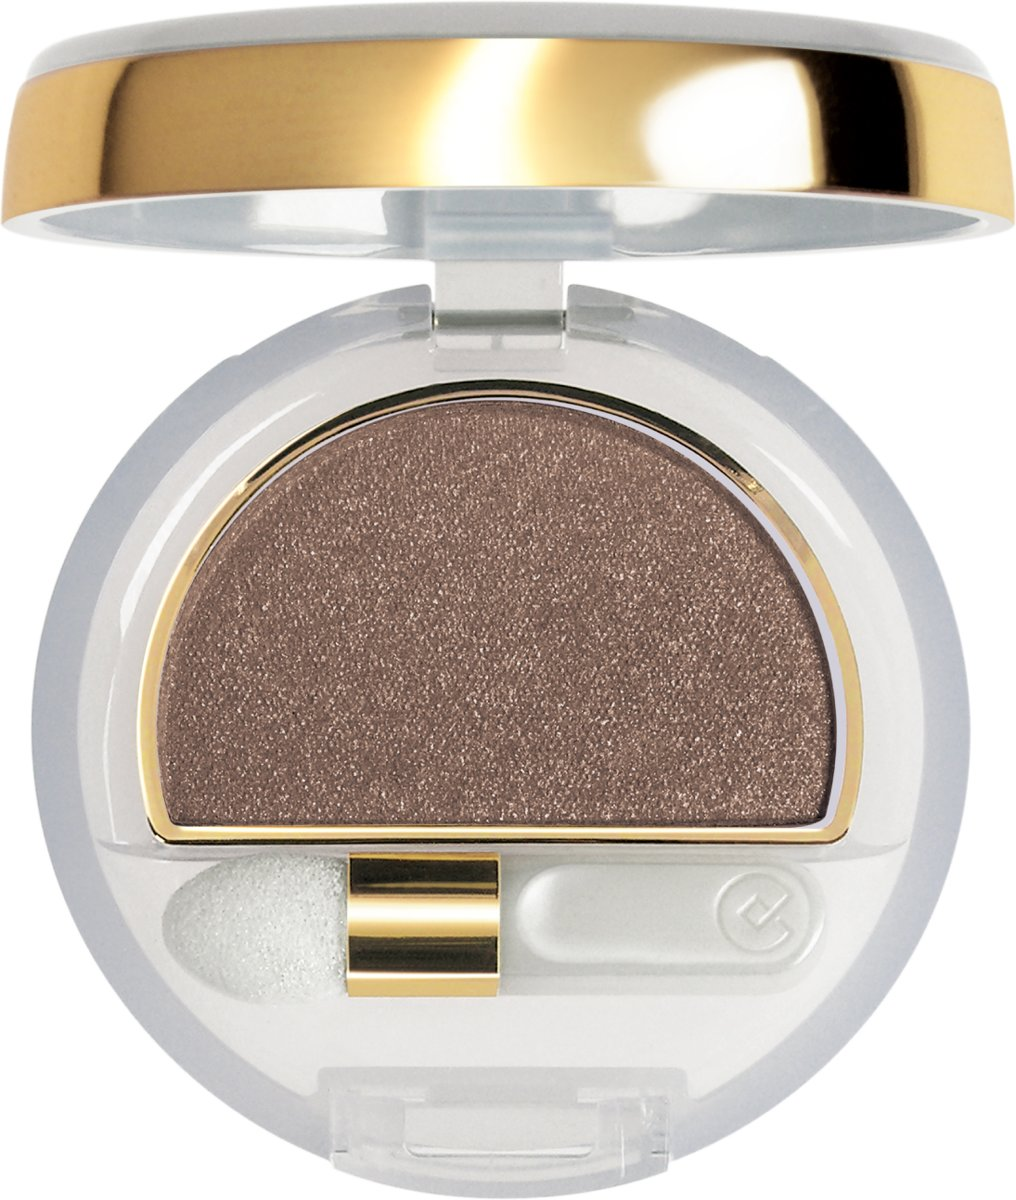 Collistar Silk Effect Eyeshadow - 67 Bronze - Oogschaduw